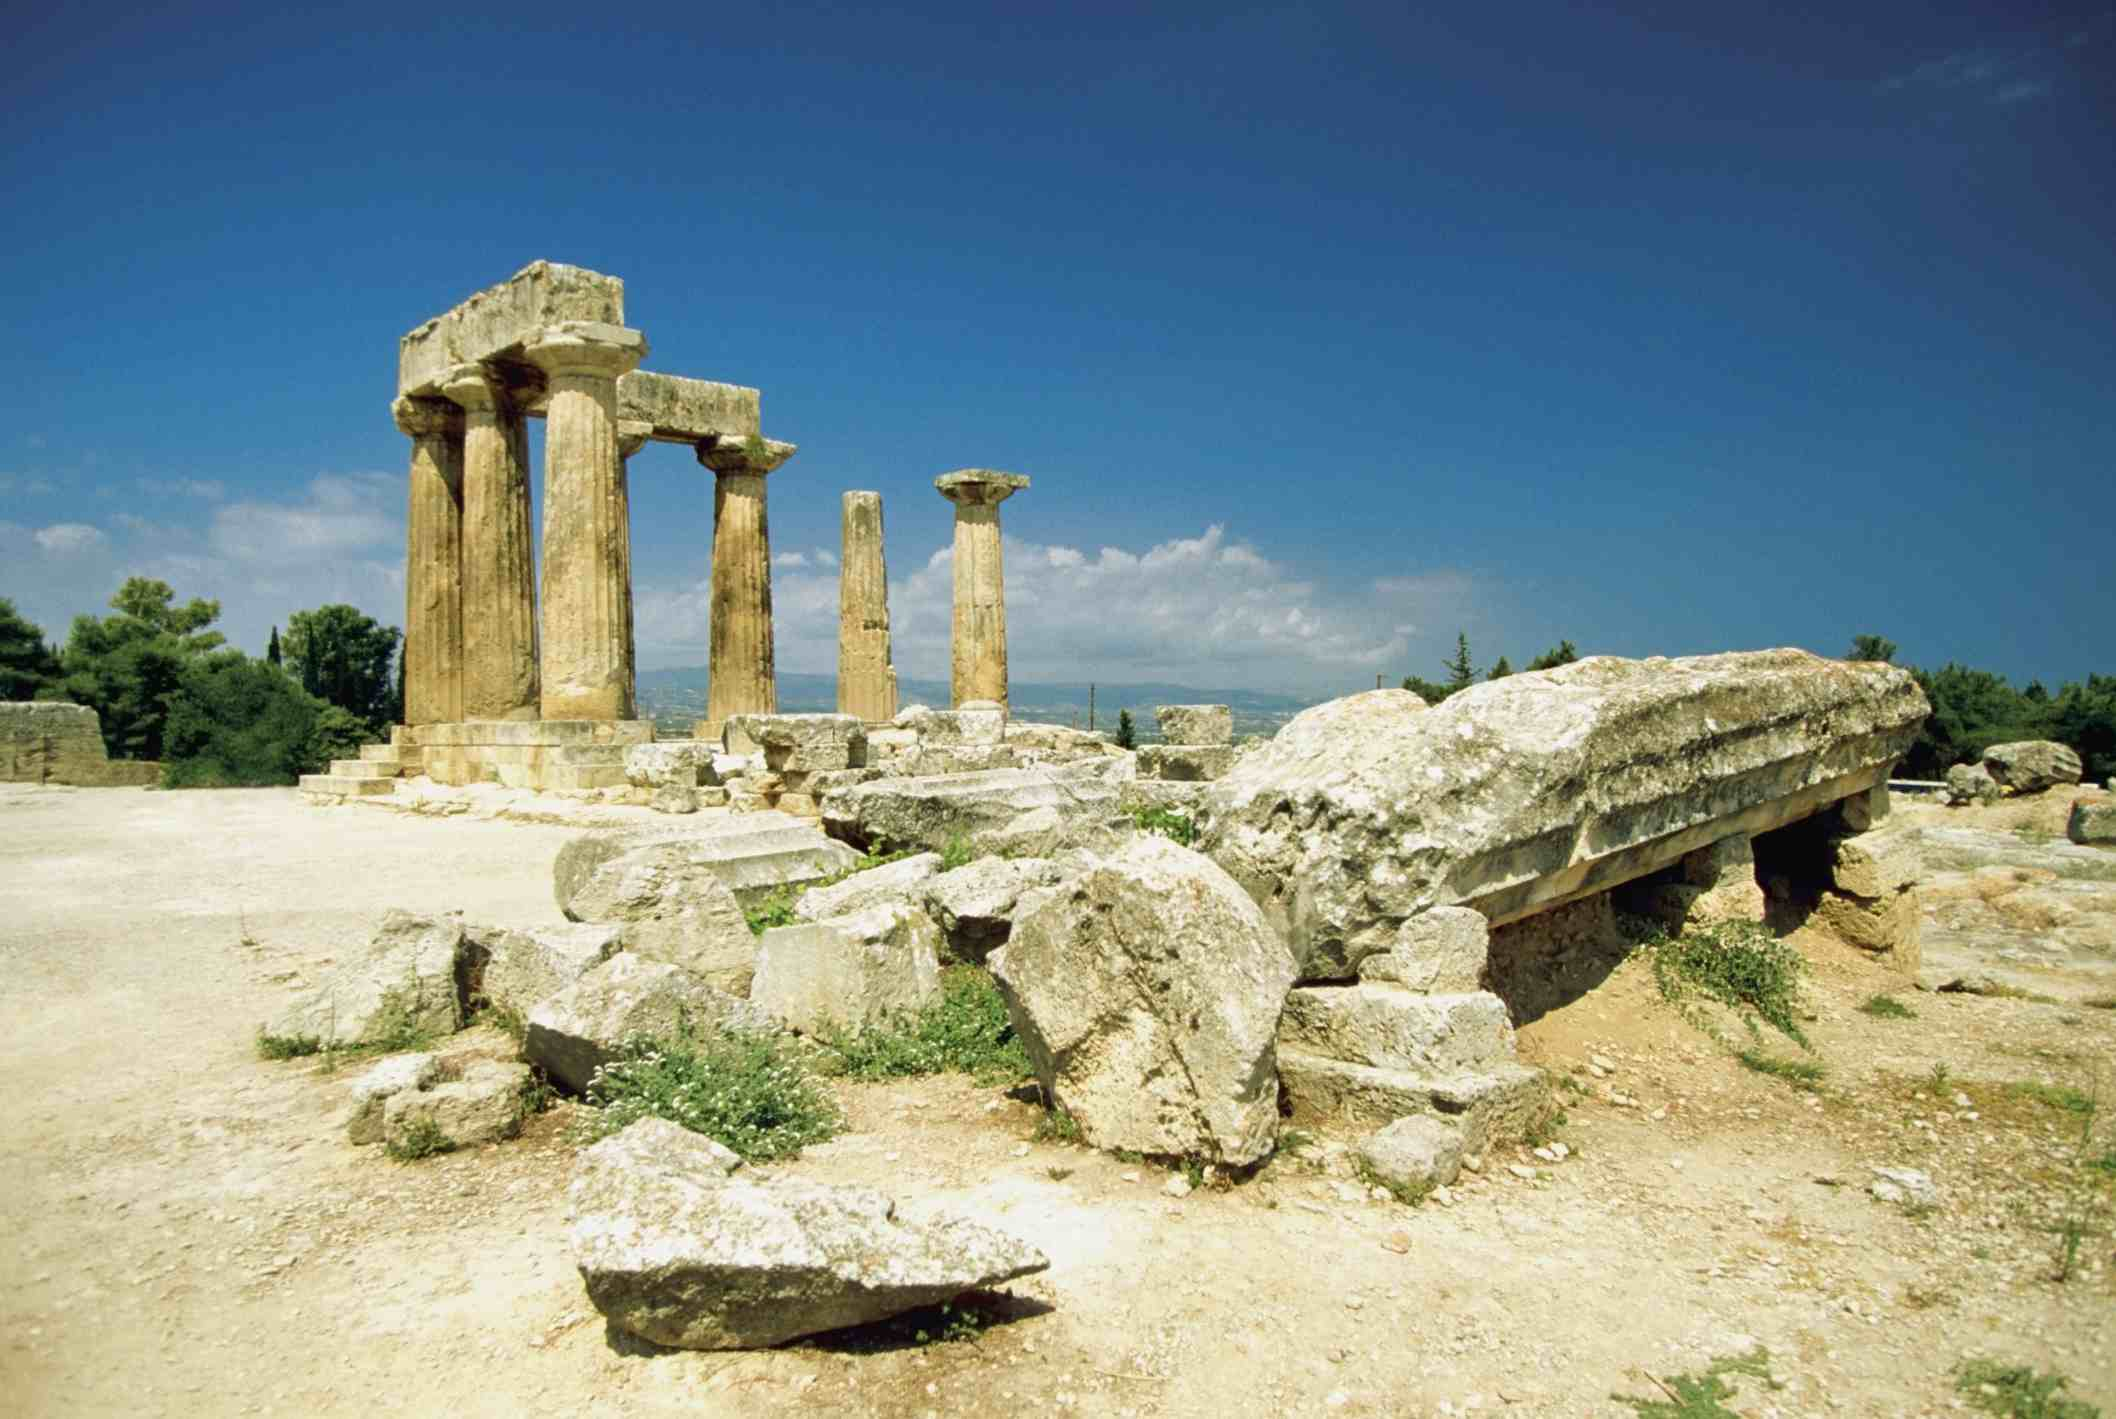 Ruins of the Temple of Apollo in Corinth on the Footsteps of Paul Tour